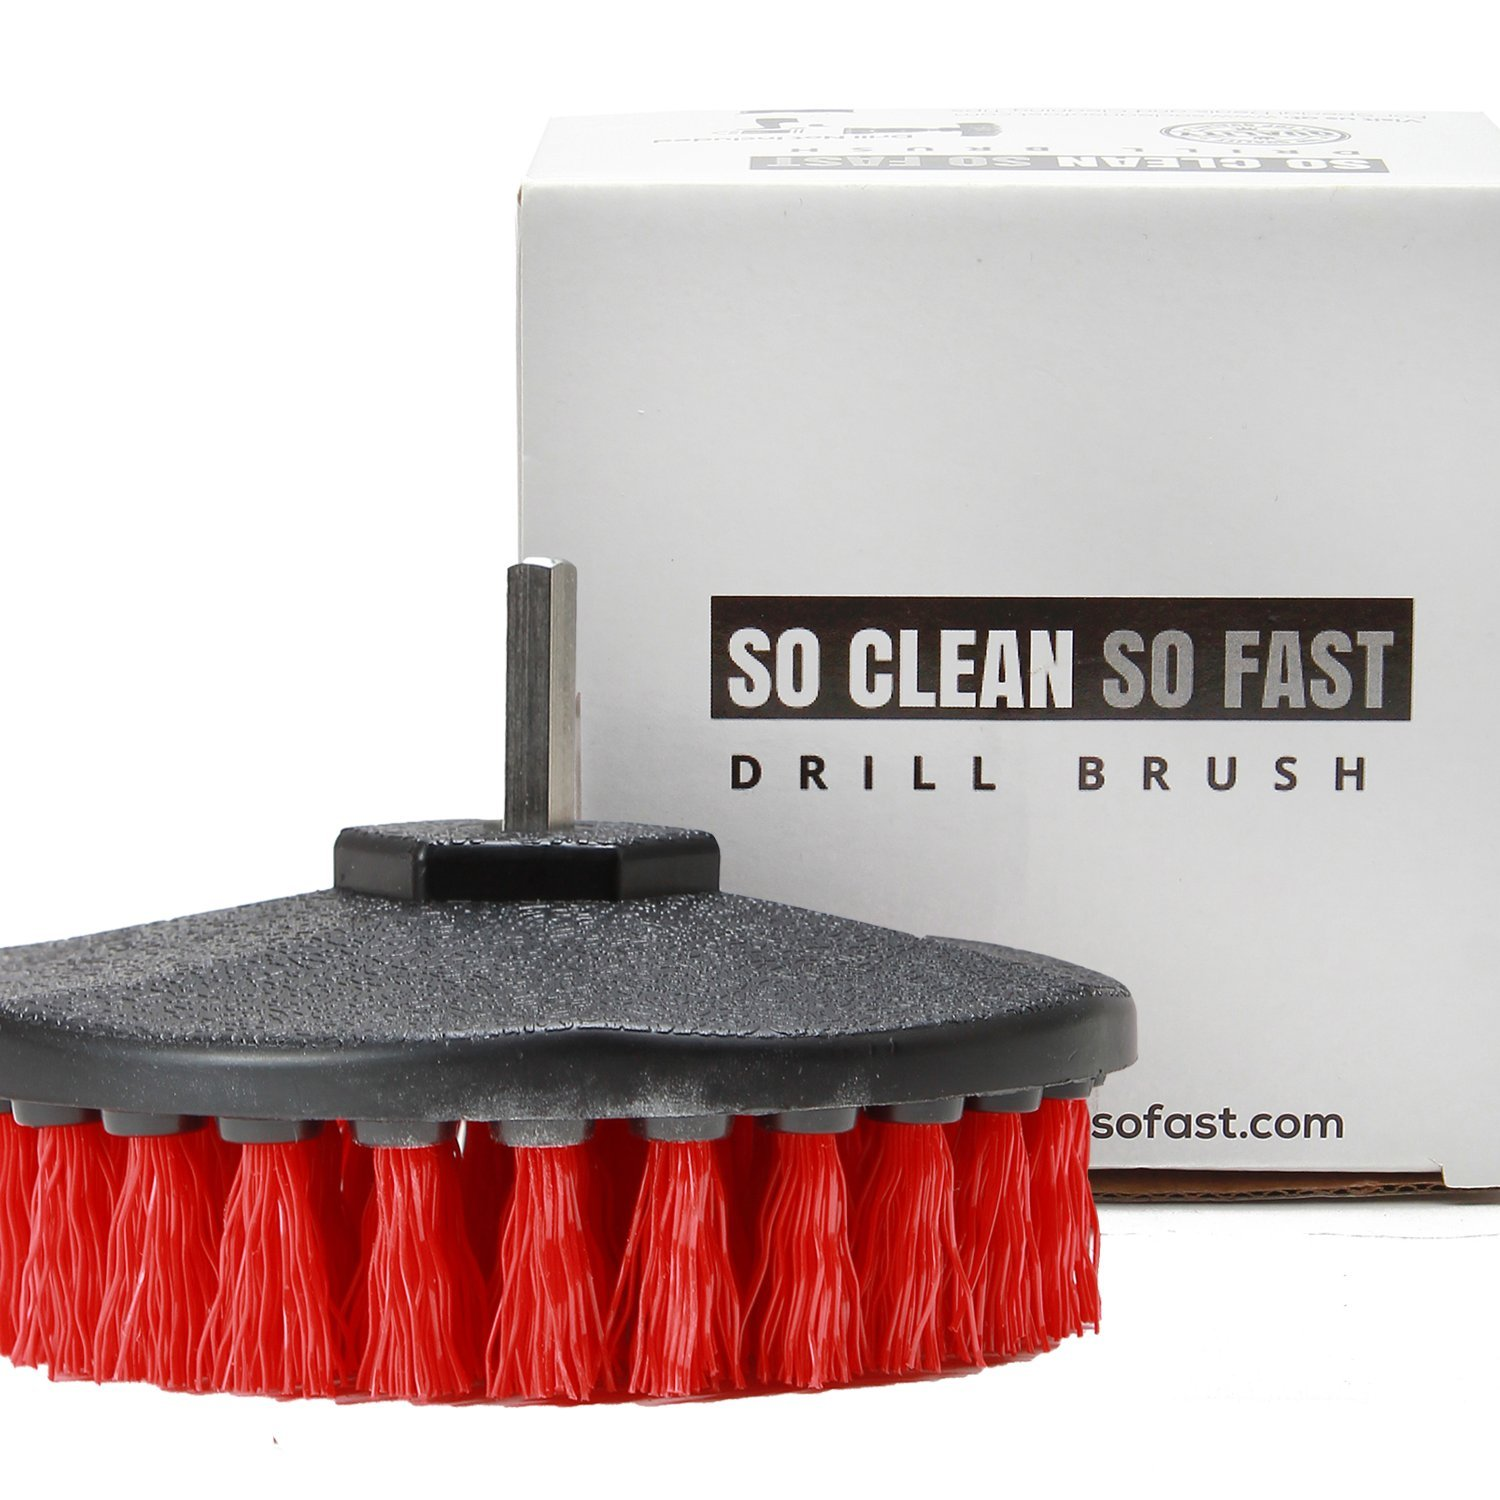 Drill Brush Heavy Duty – Clean Tile & Grout 5X faster – Spin Away Rust, Soap Scum, Mineral Deposit, Hard Water Stain – 5″ Diameter Stiff Red Nylon Bristle with Metal Shaft Attachment